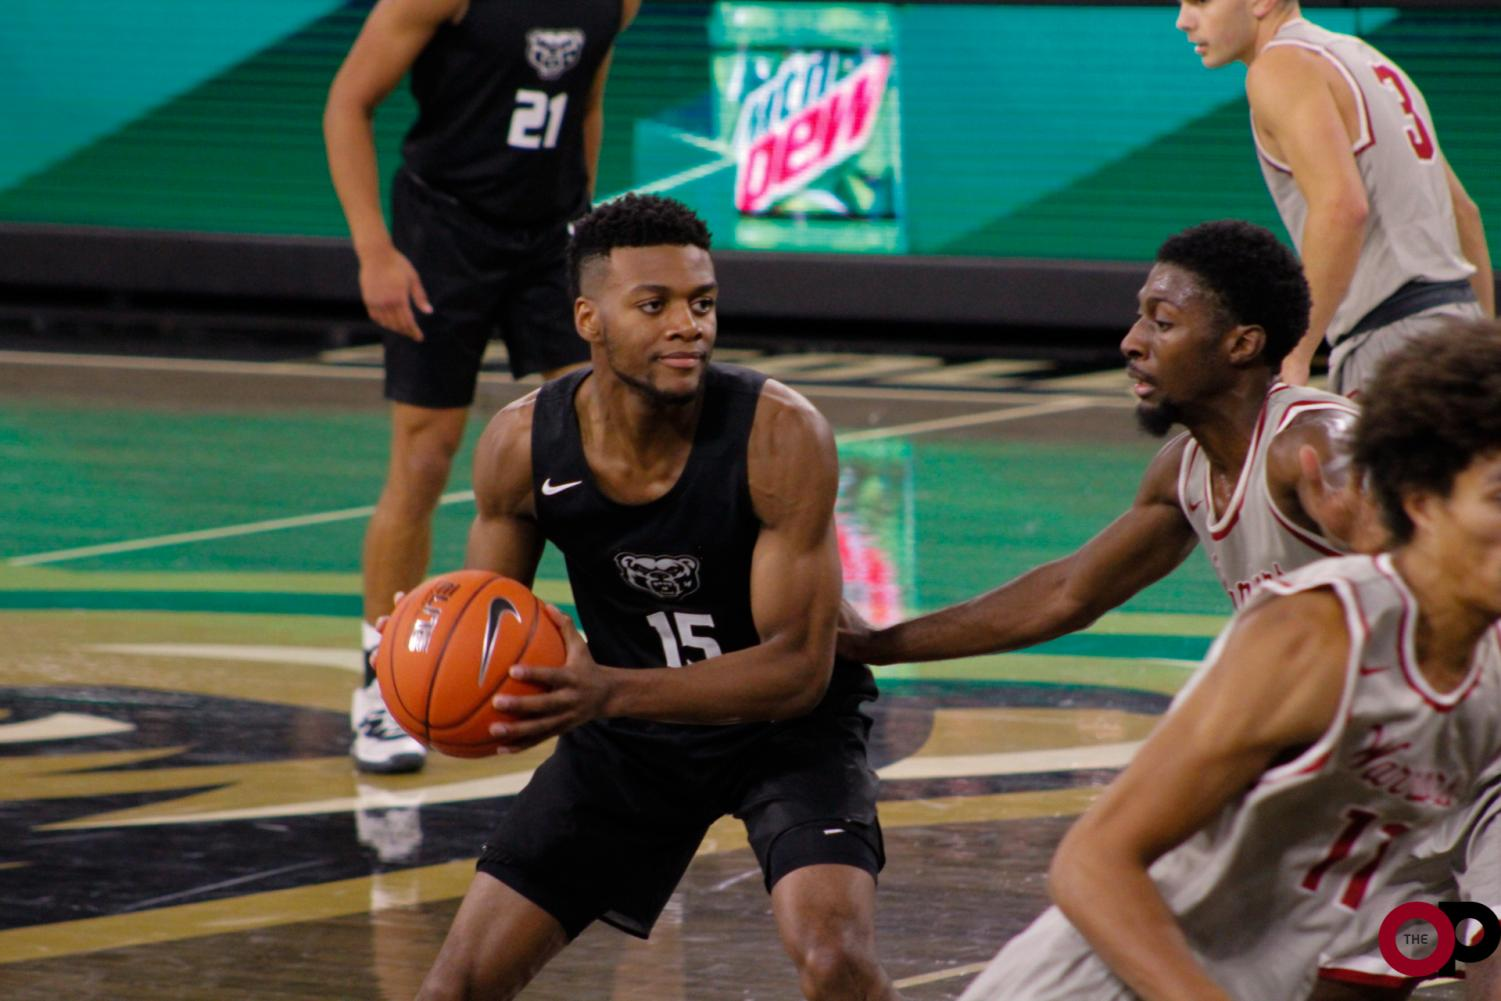 The Golden Grizzlies win 61-59 in their first exhibition game against Rochester University in the O'rena on Thursday, Oct. 24.